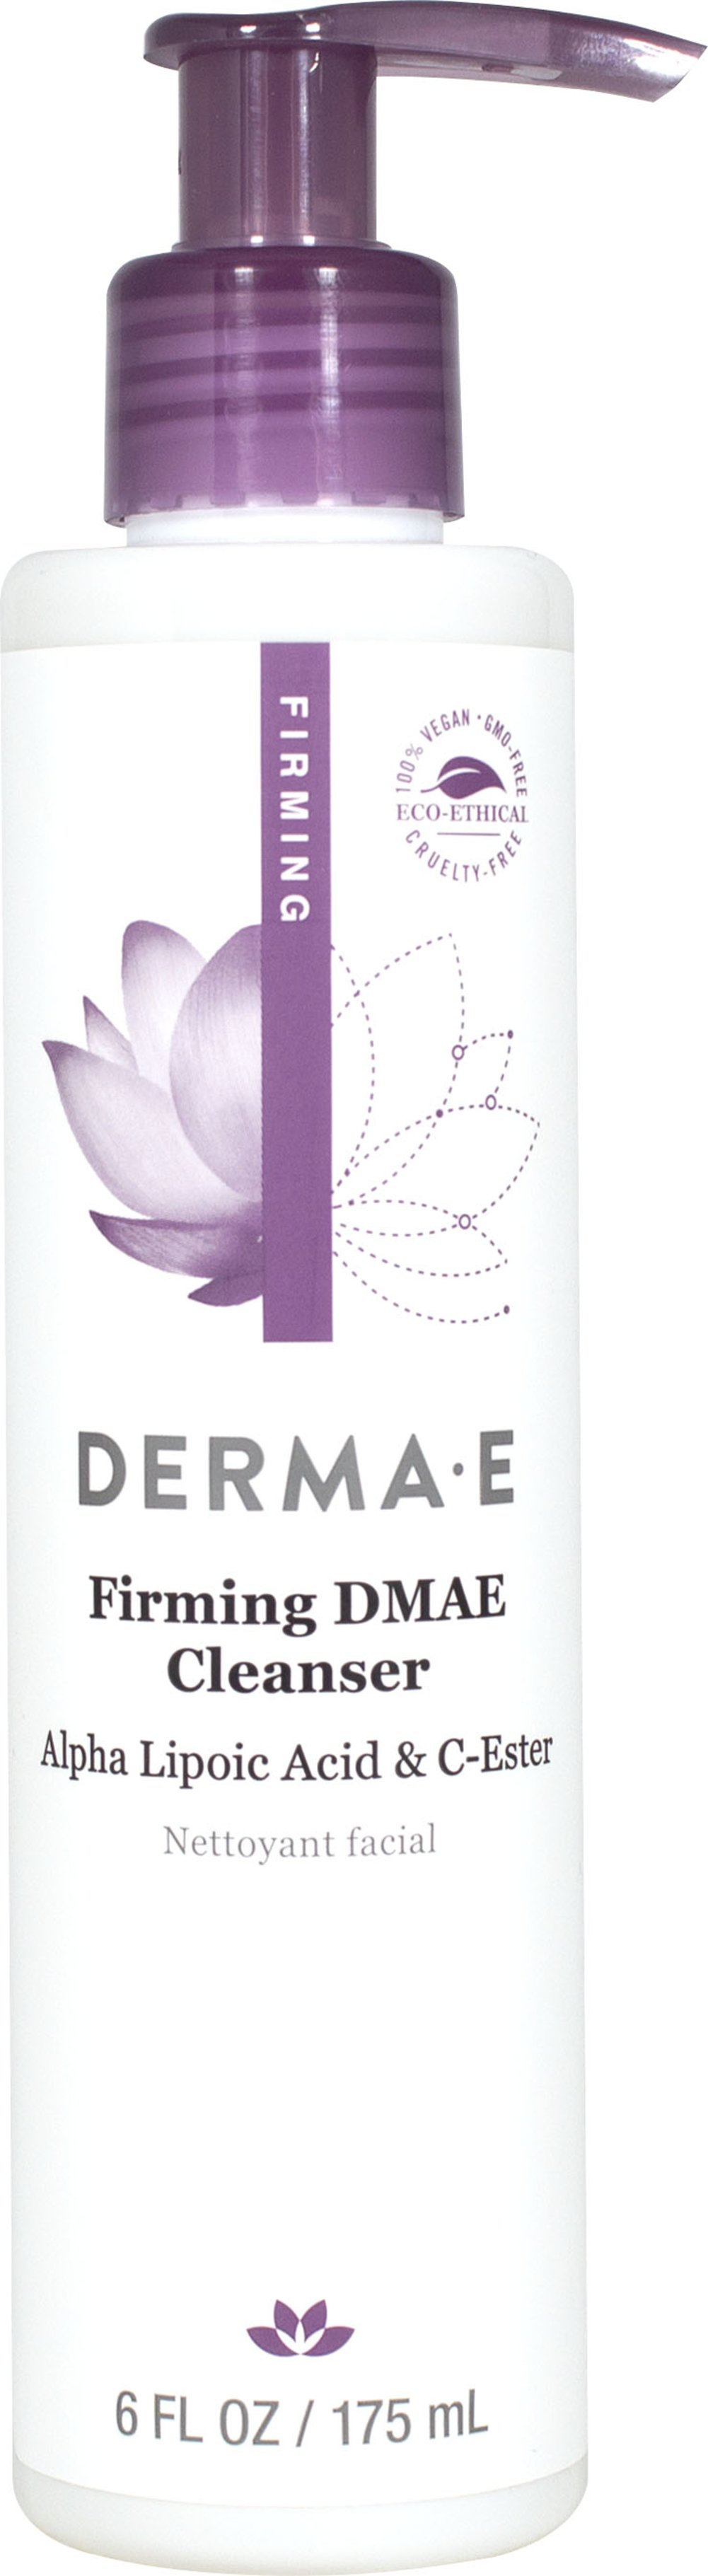 Derma E® DMAE, Alpha Lipoic, C-Ester Facial Cleanser <p><strong>From the Manufacturer:</strong></p><p>Start your firming facial skin care routine with this foaming facial cleanser that is suitable for all skin types. Naturally enriched to help tighten, tone and restore skin's smooth texture while preventing dehydration.</p><p>With Botanical Extracts</p><p>pH Balanced</p><p>Cruelty-free, Paraben-free, Eco-friendly</p>&lt